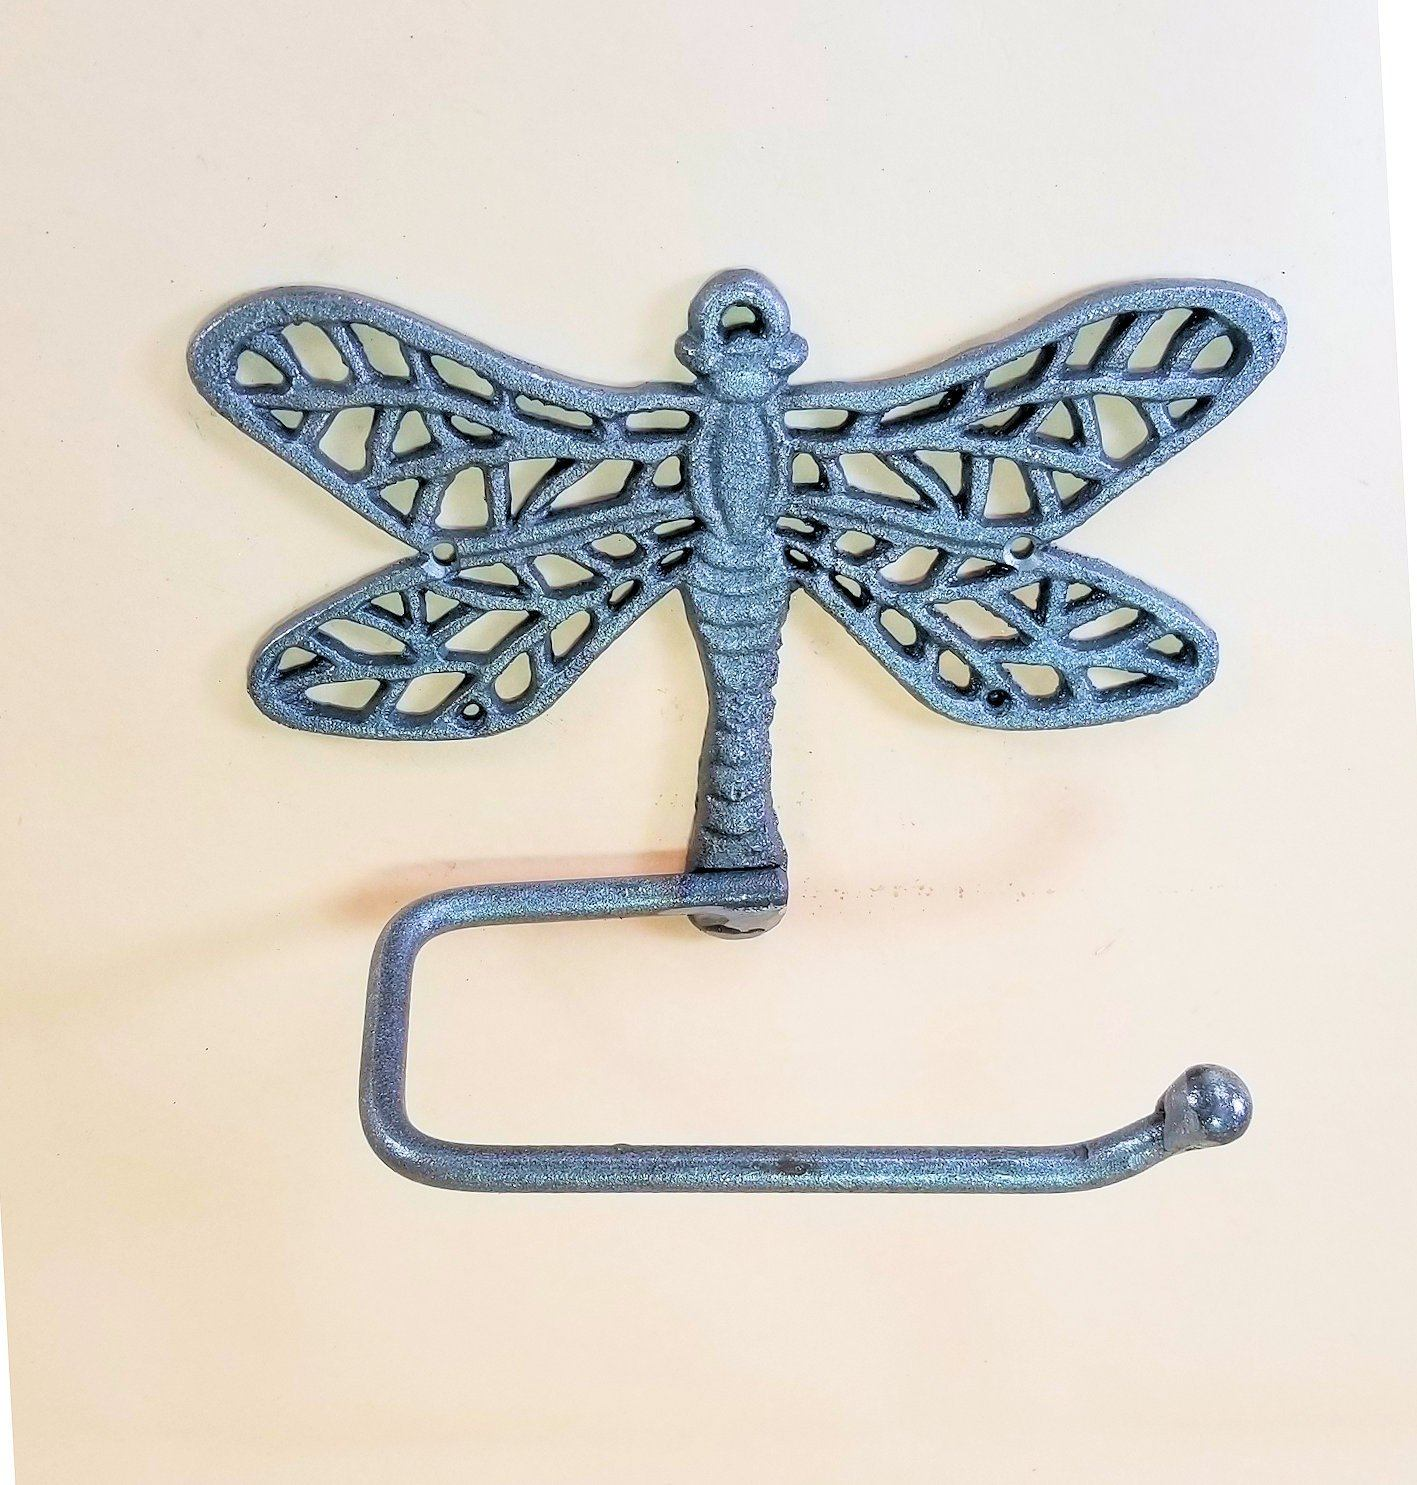 Cast Iron Dragonfly Toilet Paper Holder for the wall bath accessories Carvers Olde Iron